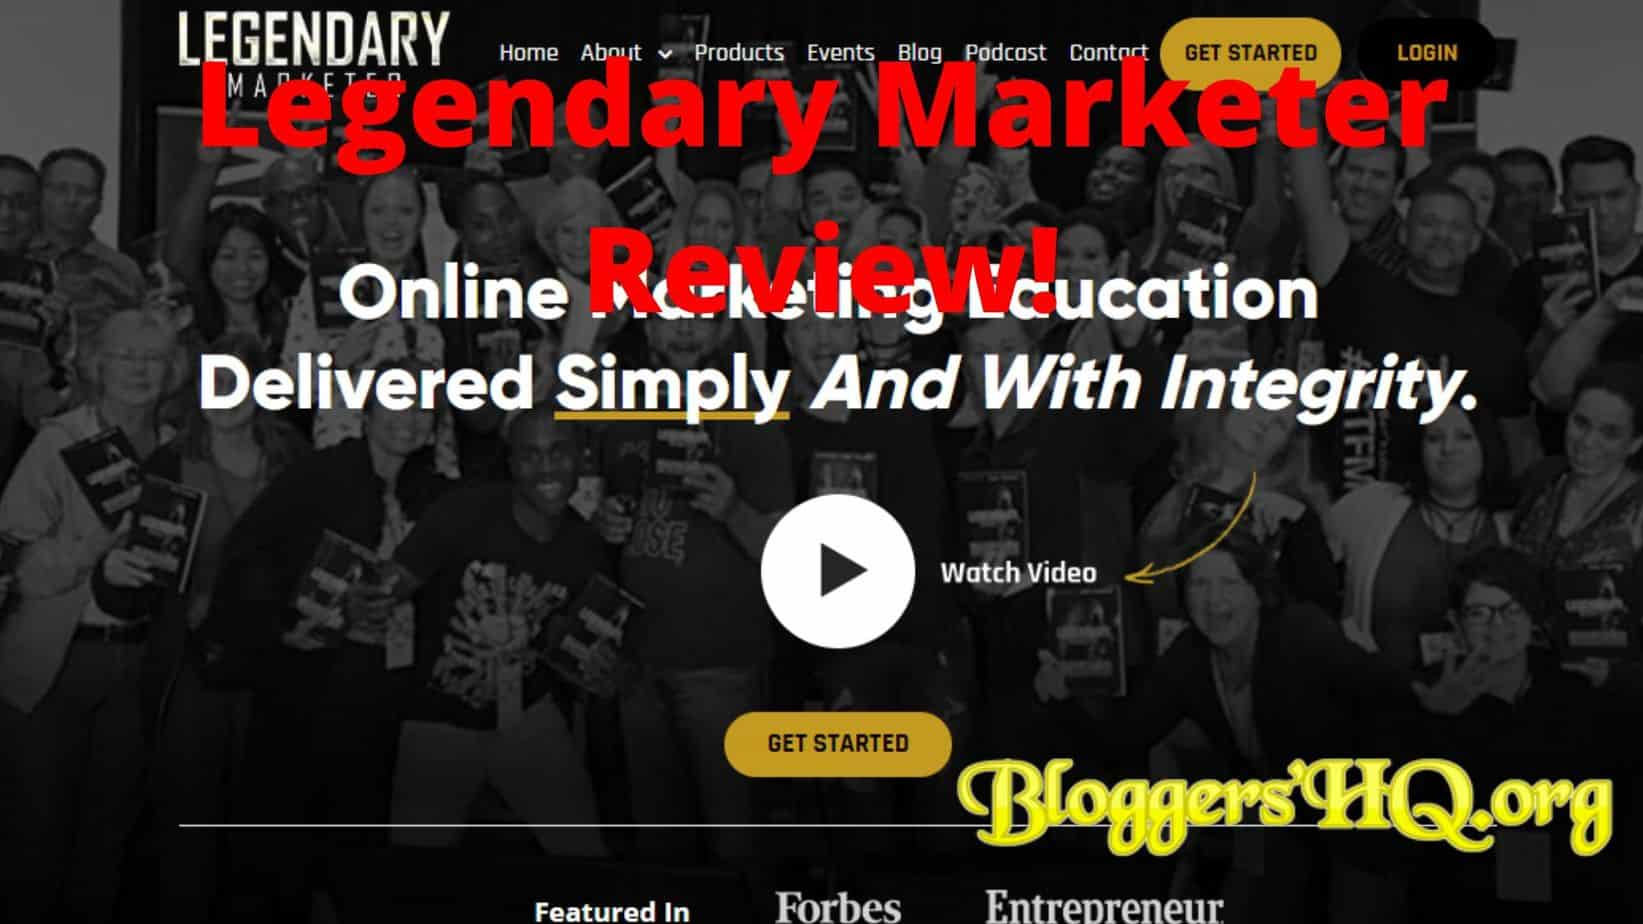 Legendary Marketer Website Coupons